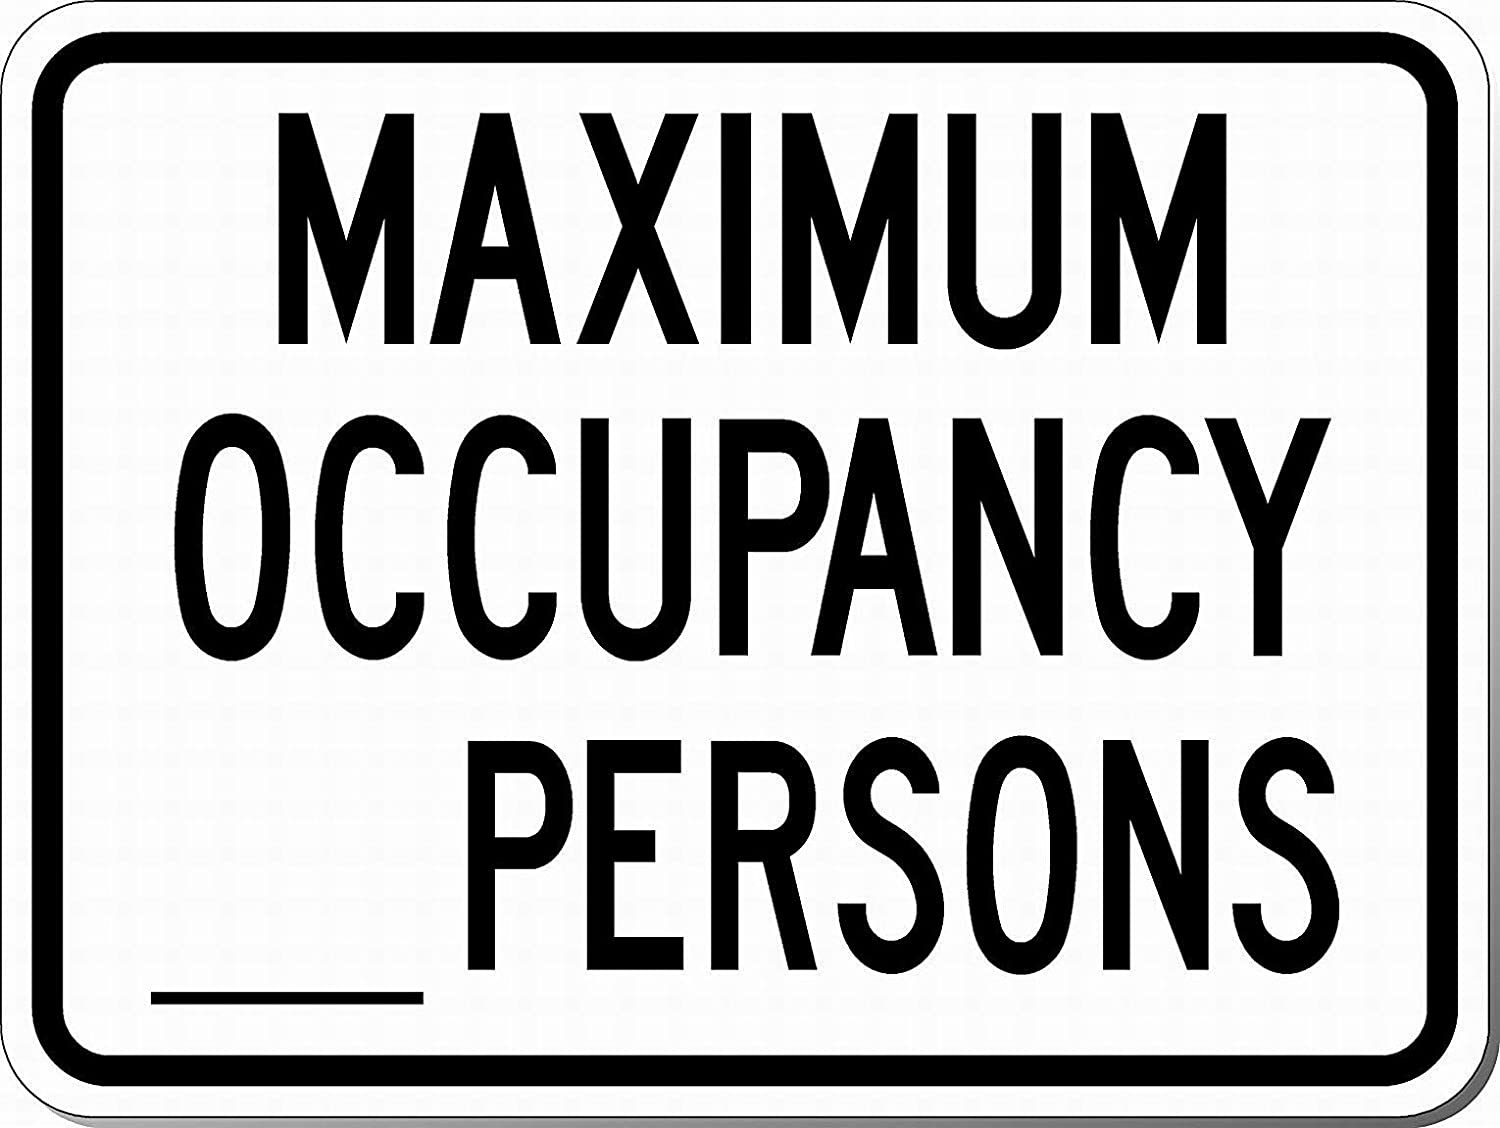 Persons Wall Art Warning Caution Tin Signs Metal Road Yard Decor by LoMall Safety Sign 8x12 Danger Sign Cecil Barnard Maximum Occupancy Blank Space